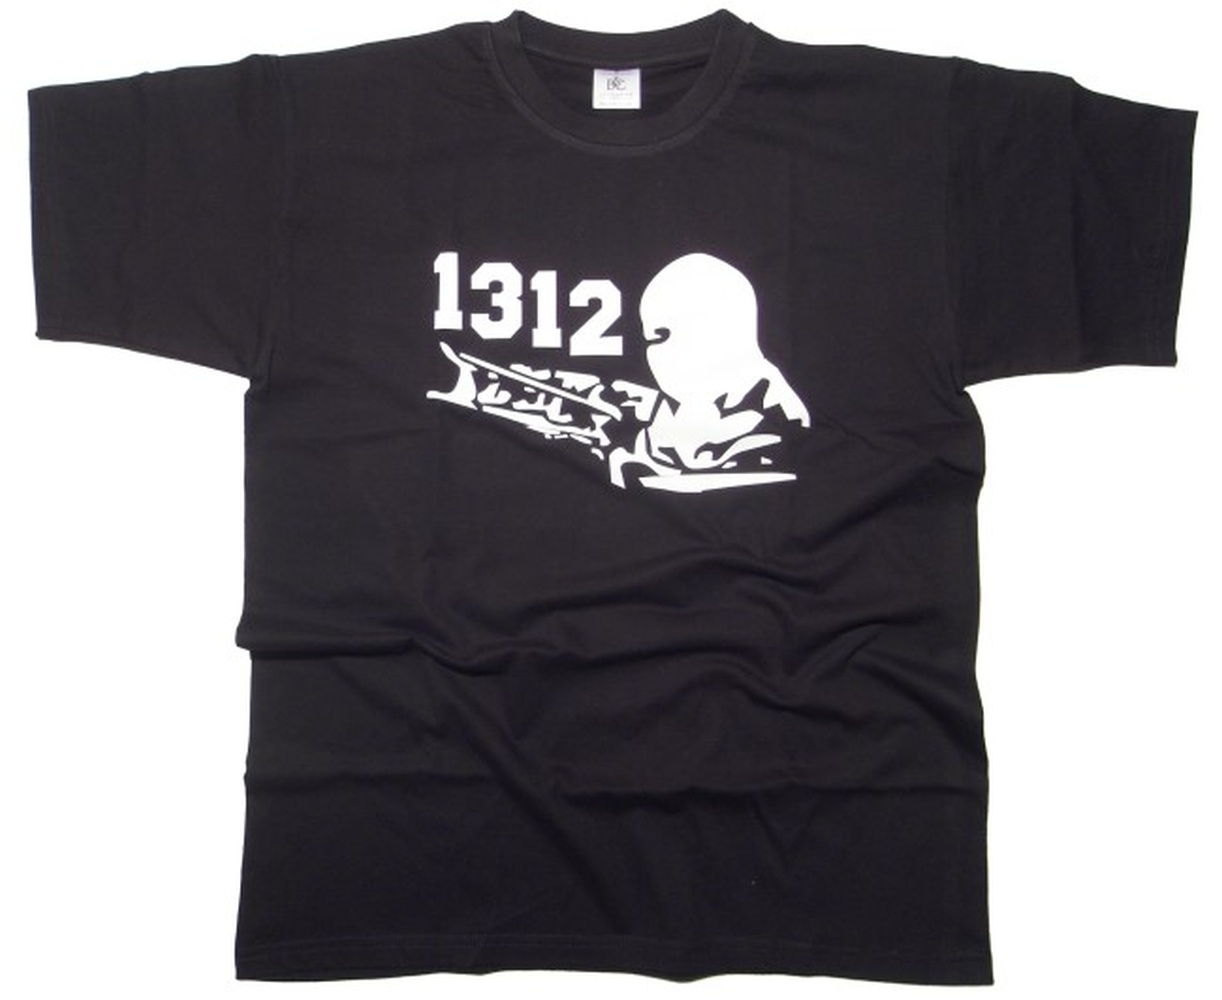 T-Shirt 1312 Zwille Extrem Style